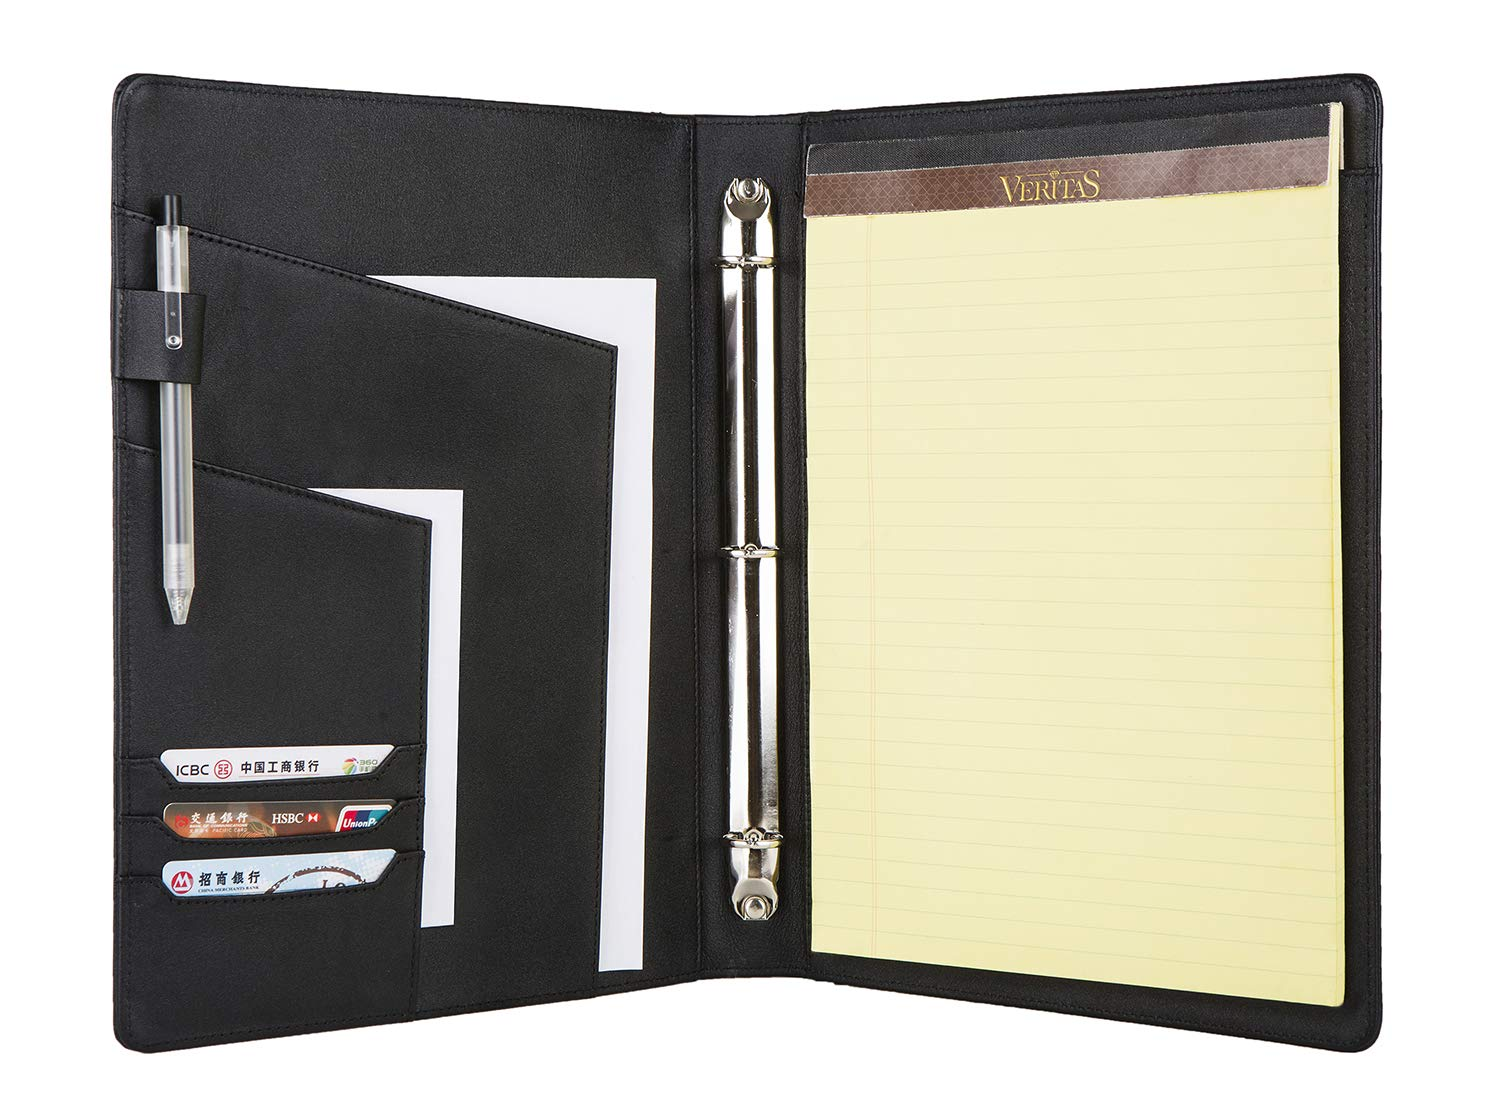 Handmade Genuine Leather Business Conference File Folder with 3 Ring Binder,Portfolio Padfolio Organizing Case with A4/Letter Size Notepad Holder,Black